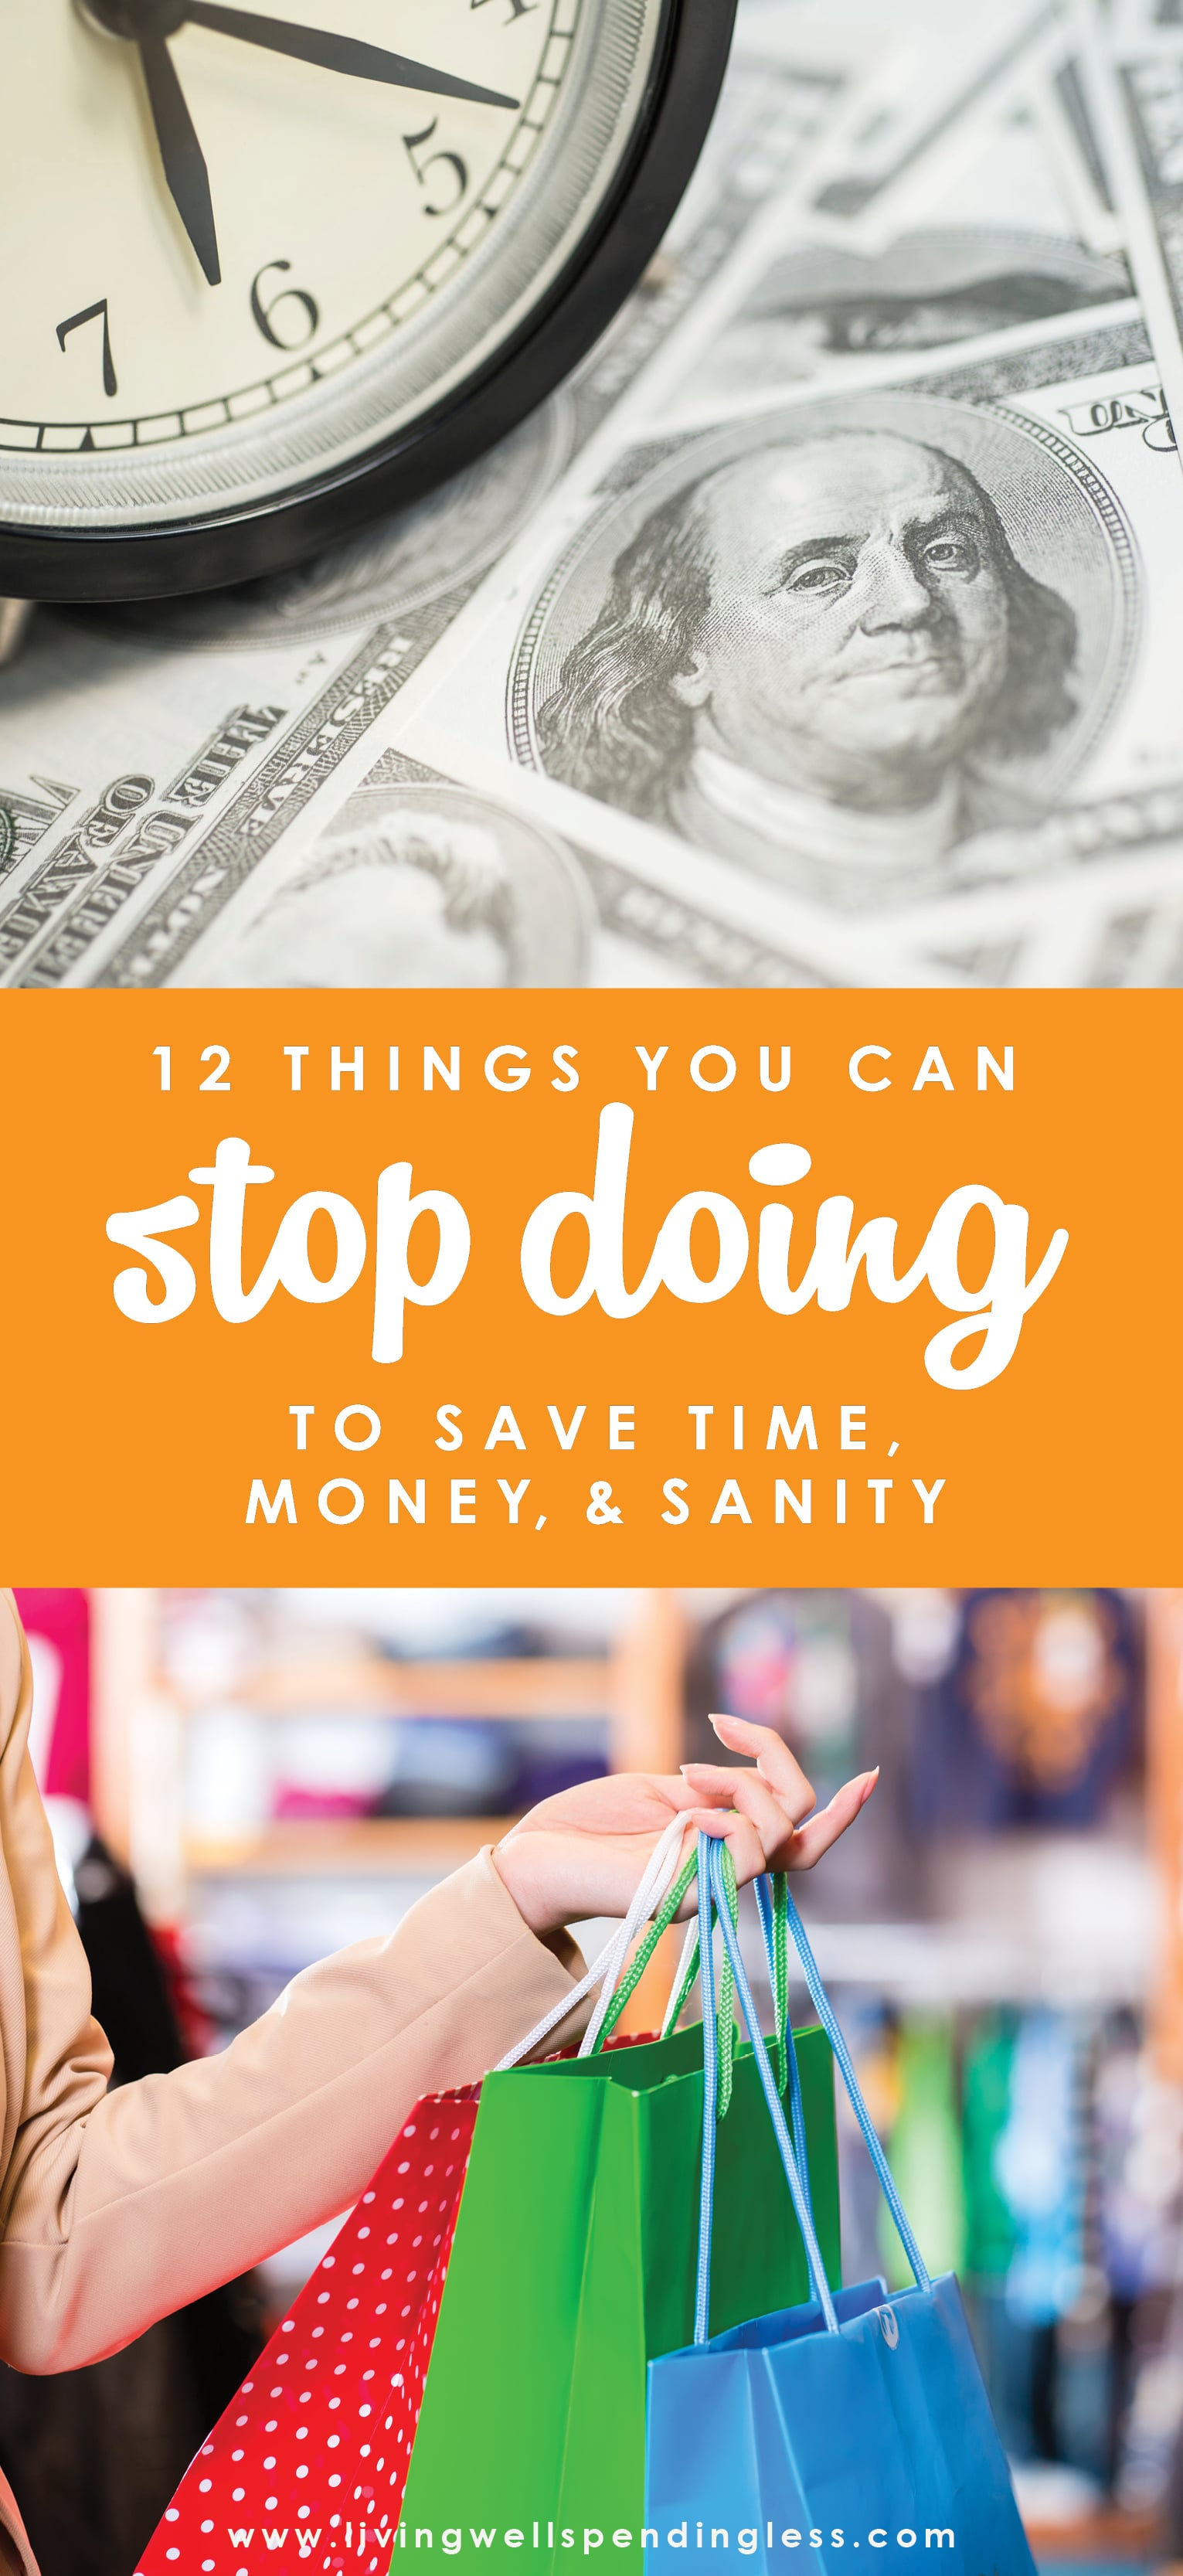 We often spend a lot of time talking about the things we should do to save time & money, but have you ever given any thought to what things NOT to do?  These are the 12 things I DON'T do to save time, money, & sanity--what are yours?   12 Things NOT to Do to Save Time, Money & Sanity   Budgeting 101   Money Saving Tips   Time Management